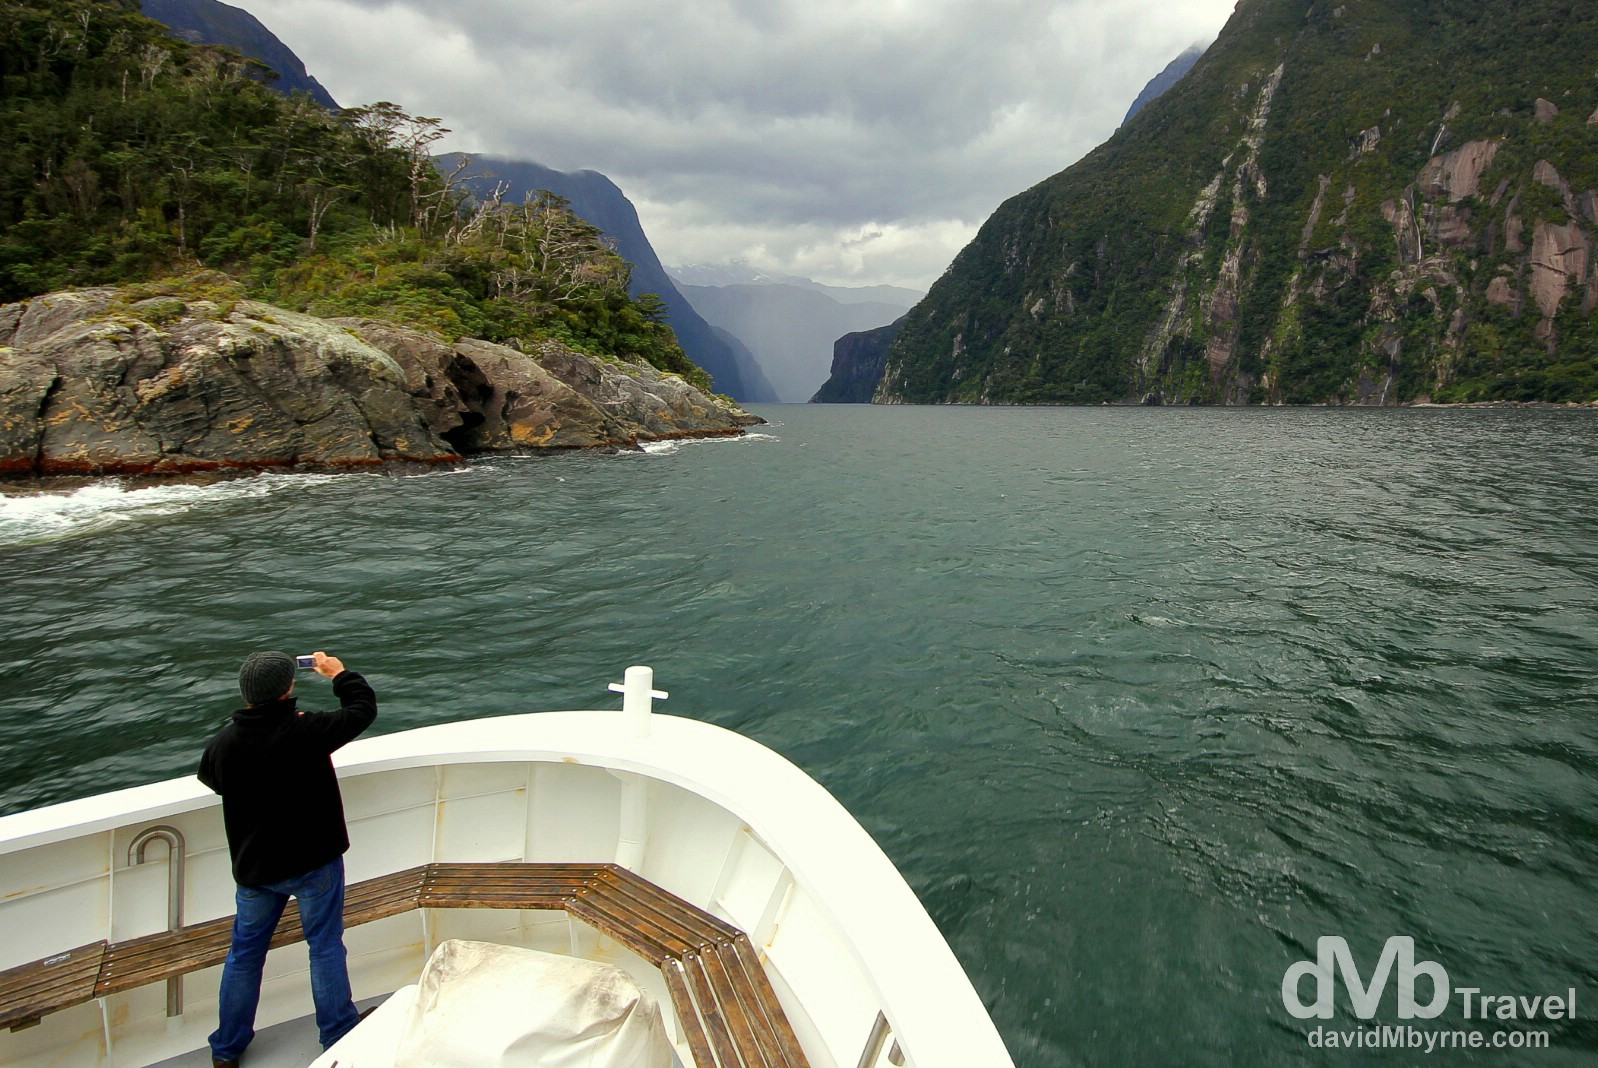 Entering Milford Sound, South Island, New Zealand. May 26th 2012.